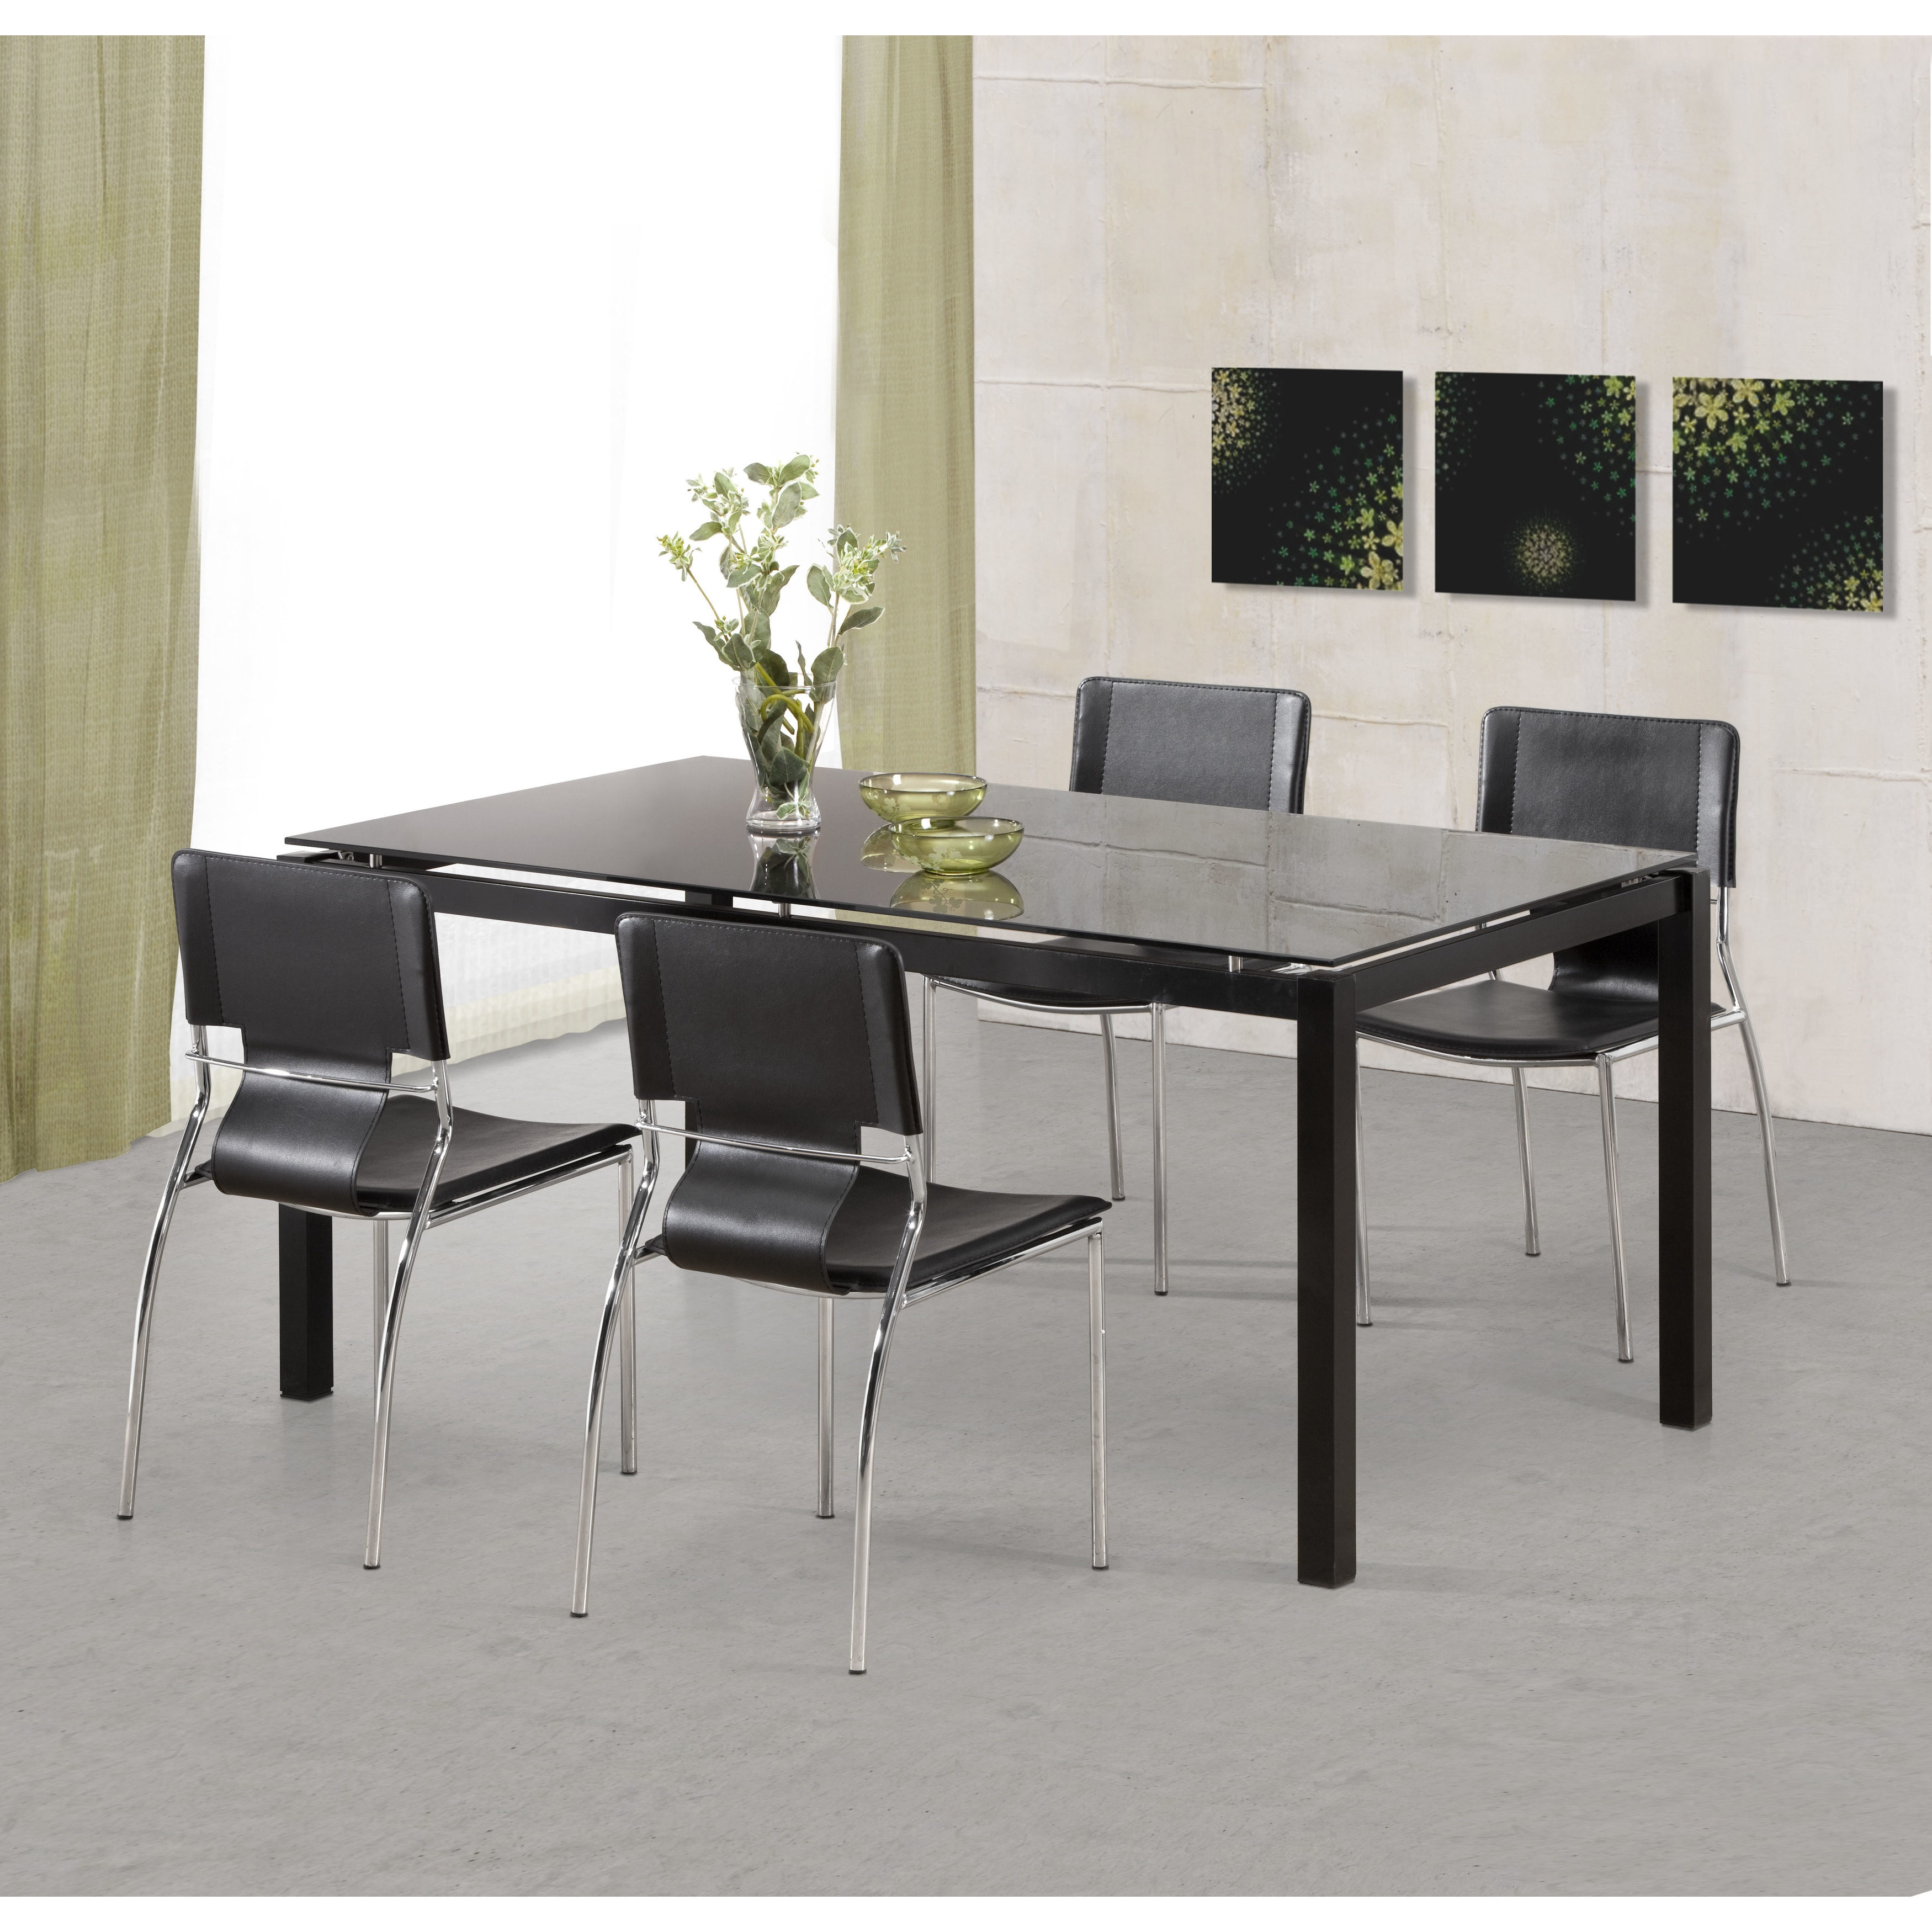 Trafico Modern Leather and Chrome Steel Black Dining Chairs (Set of 4) -  20L x 17W x 33H/N/A